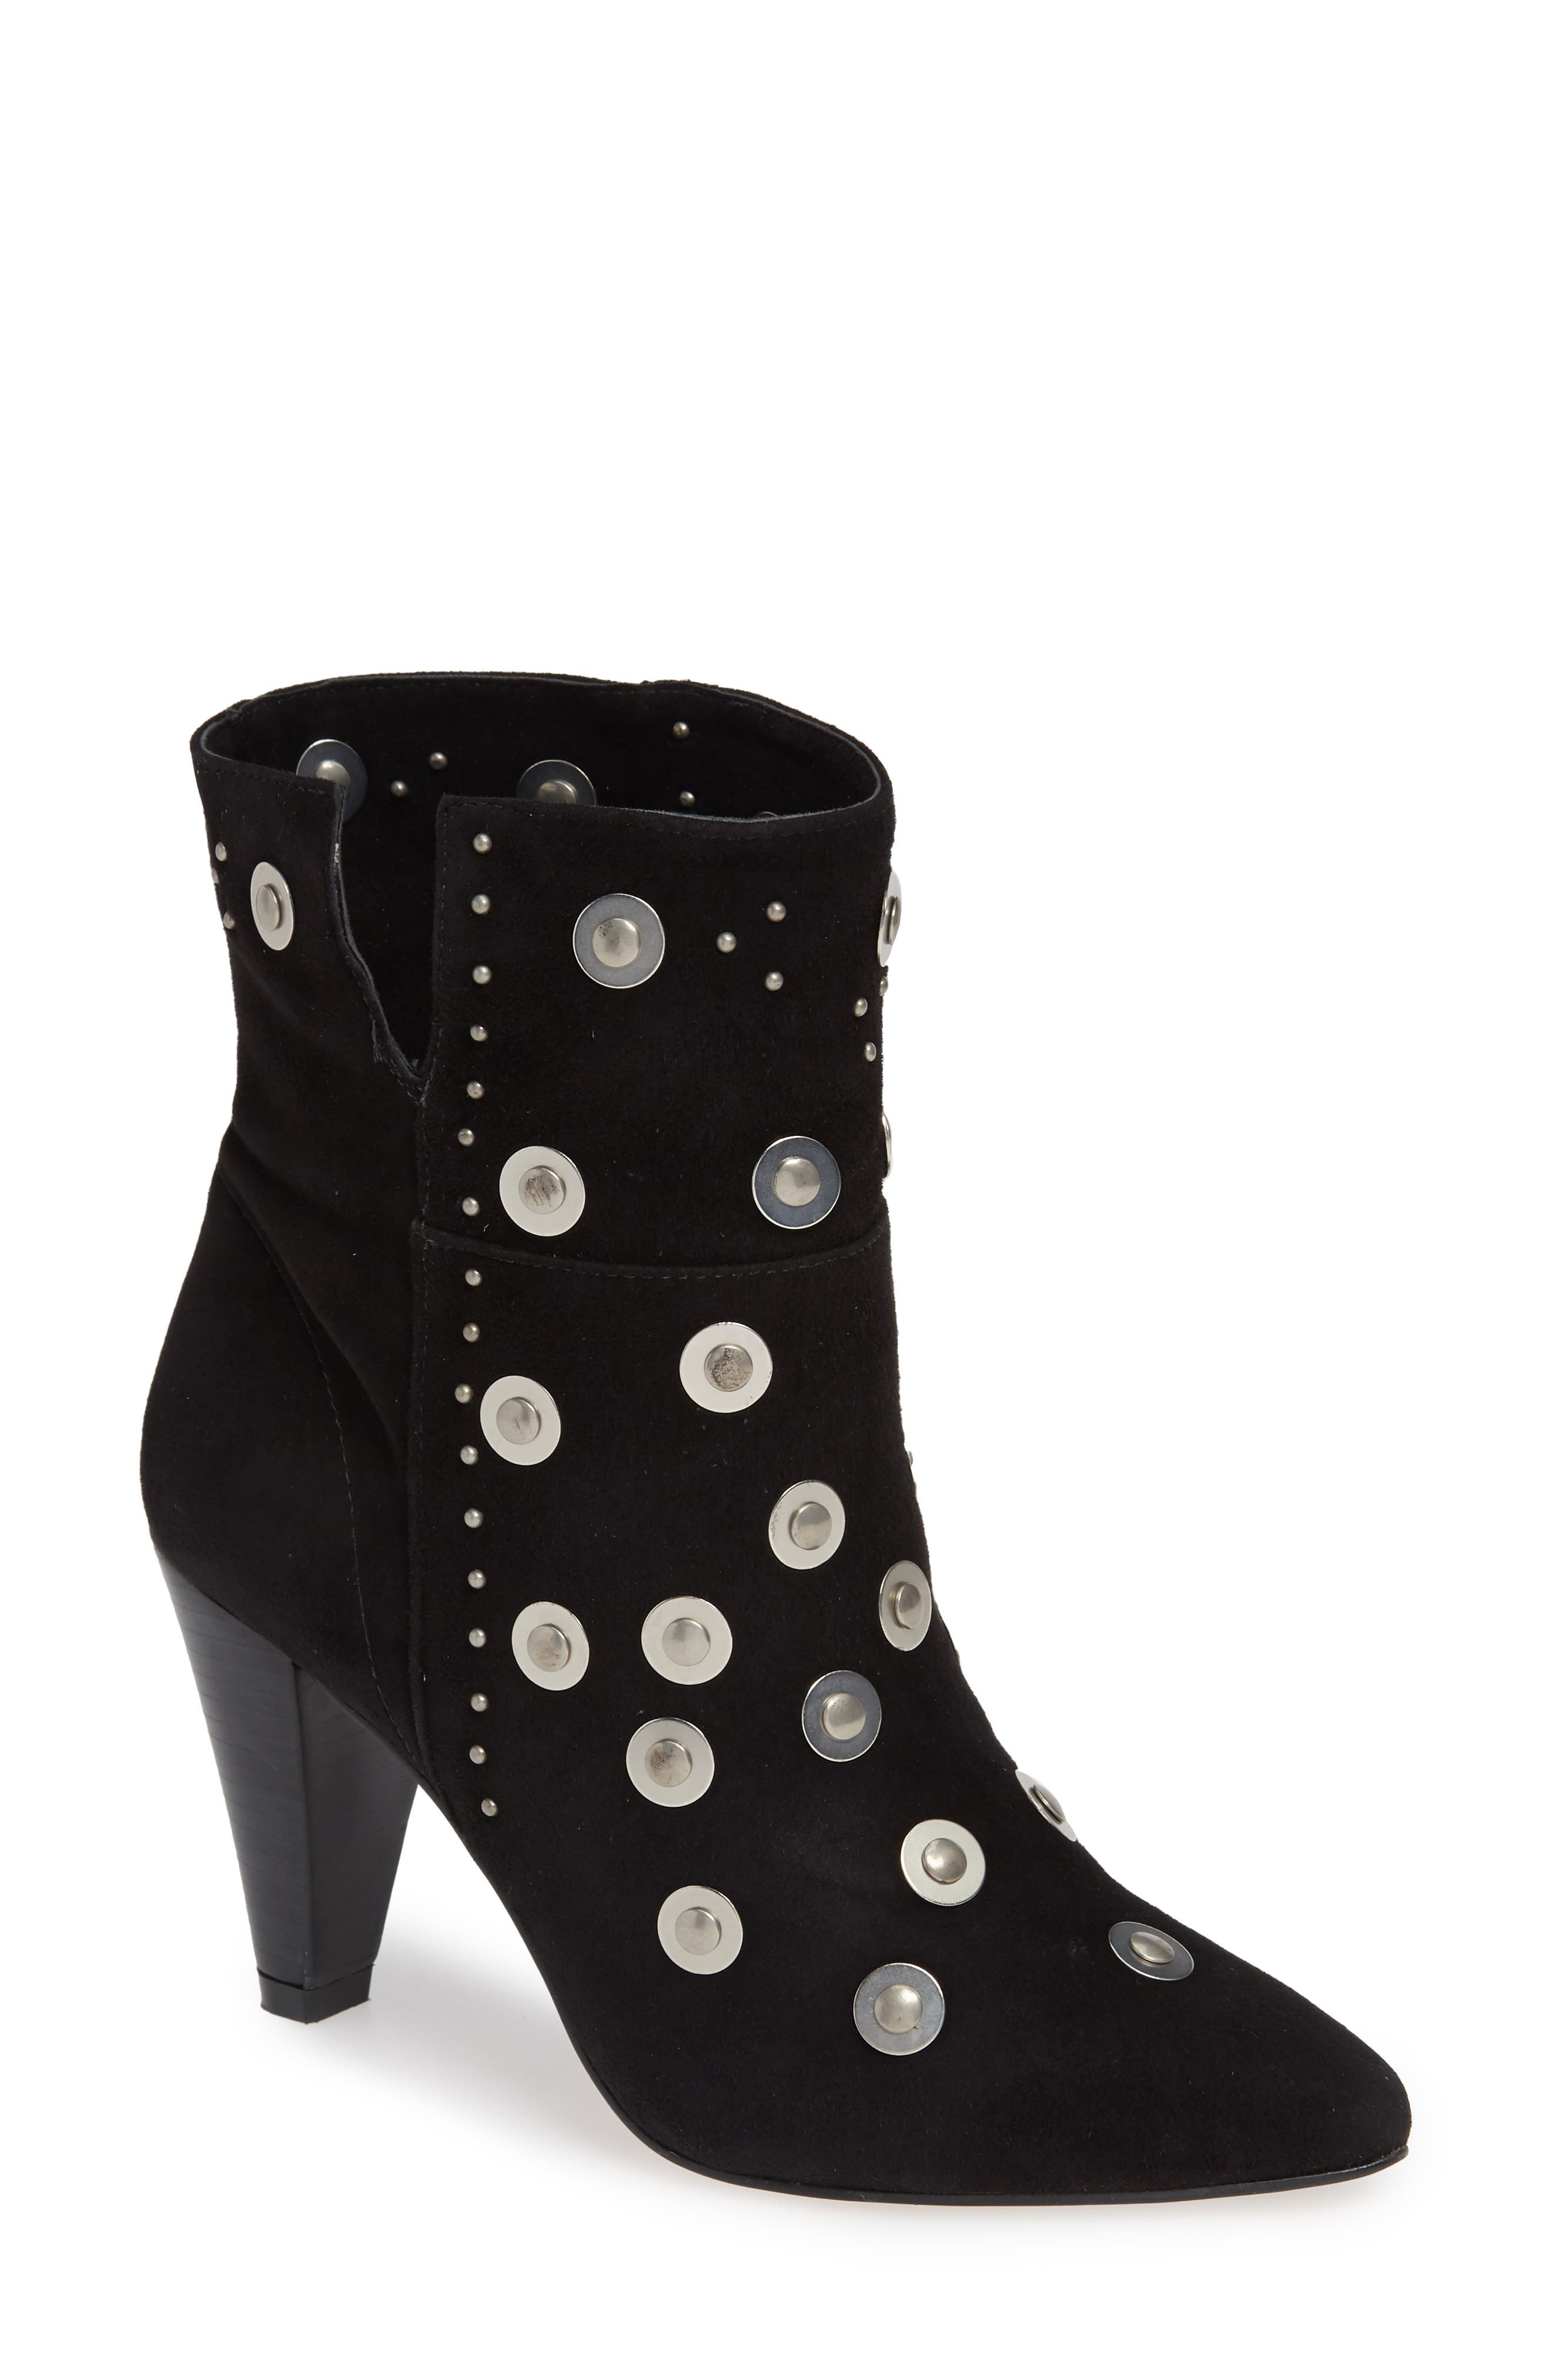 LUST FOR LIFE Casablanca Stud Bootie in Black Nubuck Leather